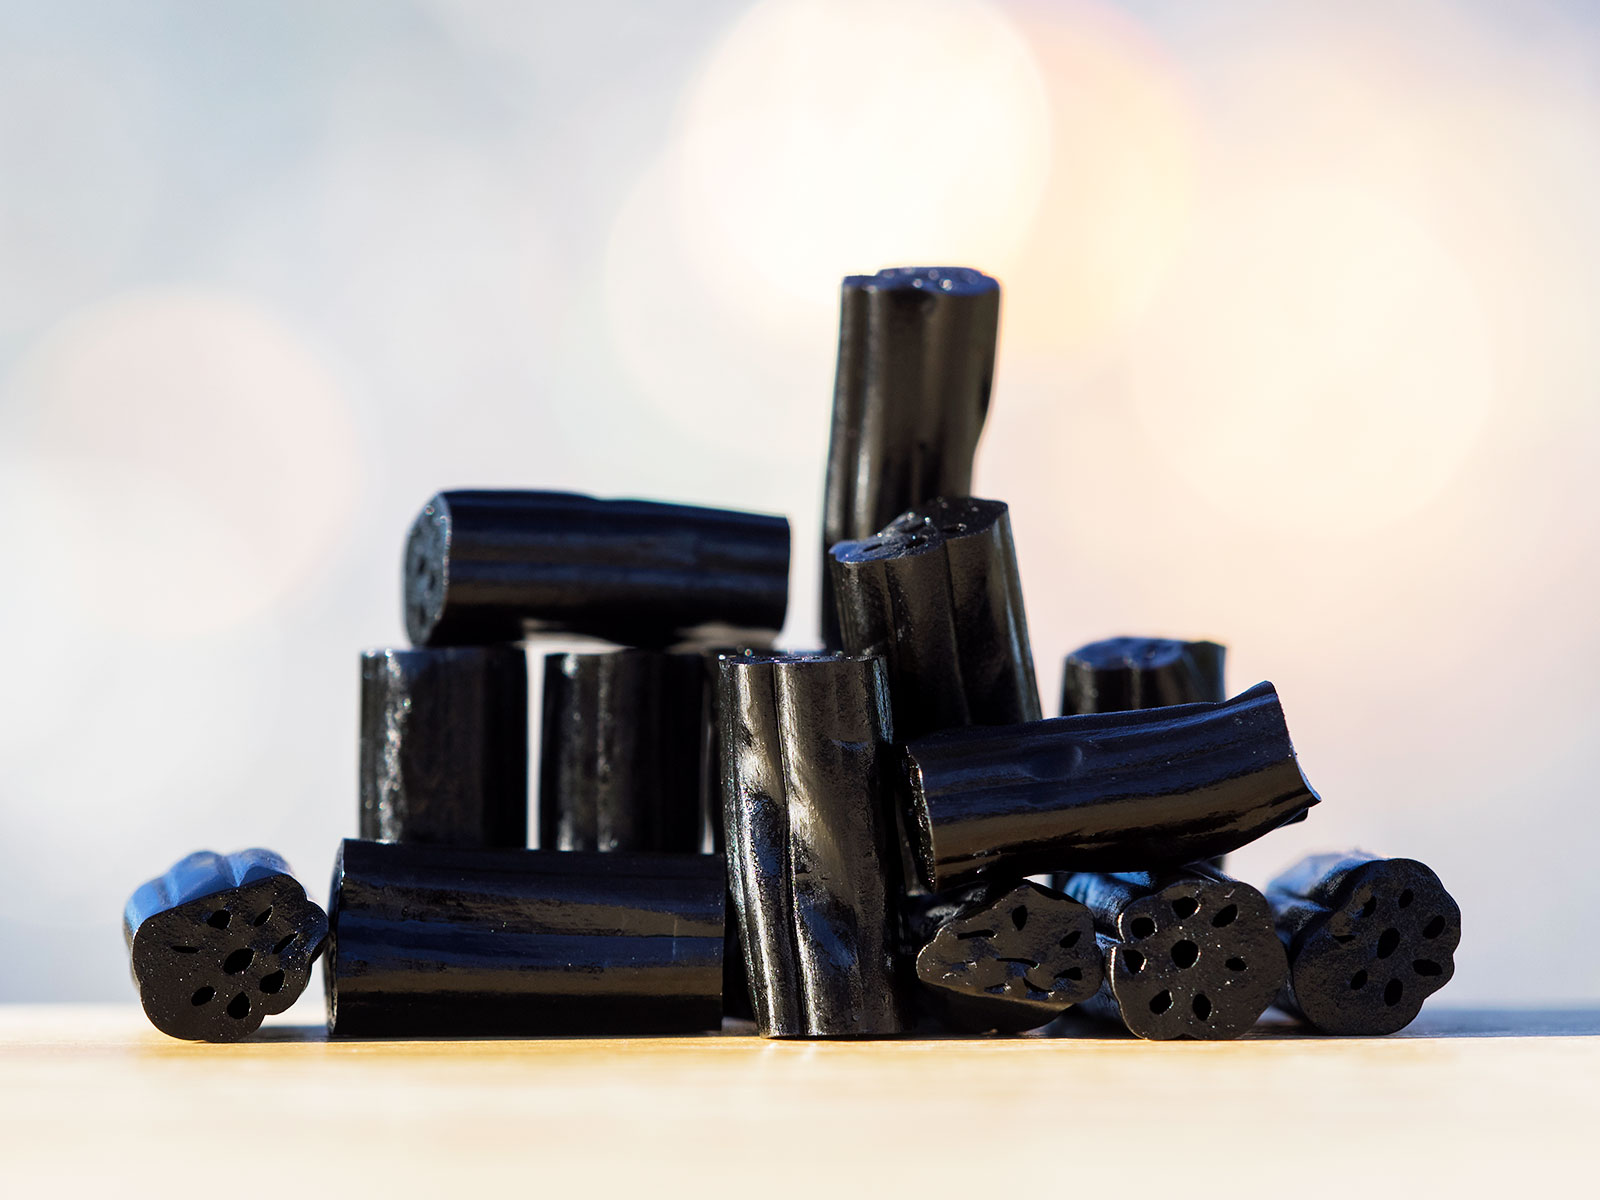 Too Much Black Licorice Could Kill You, FDA Reminds Everyone for Halloween